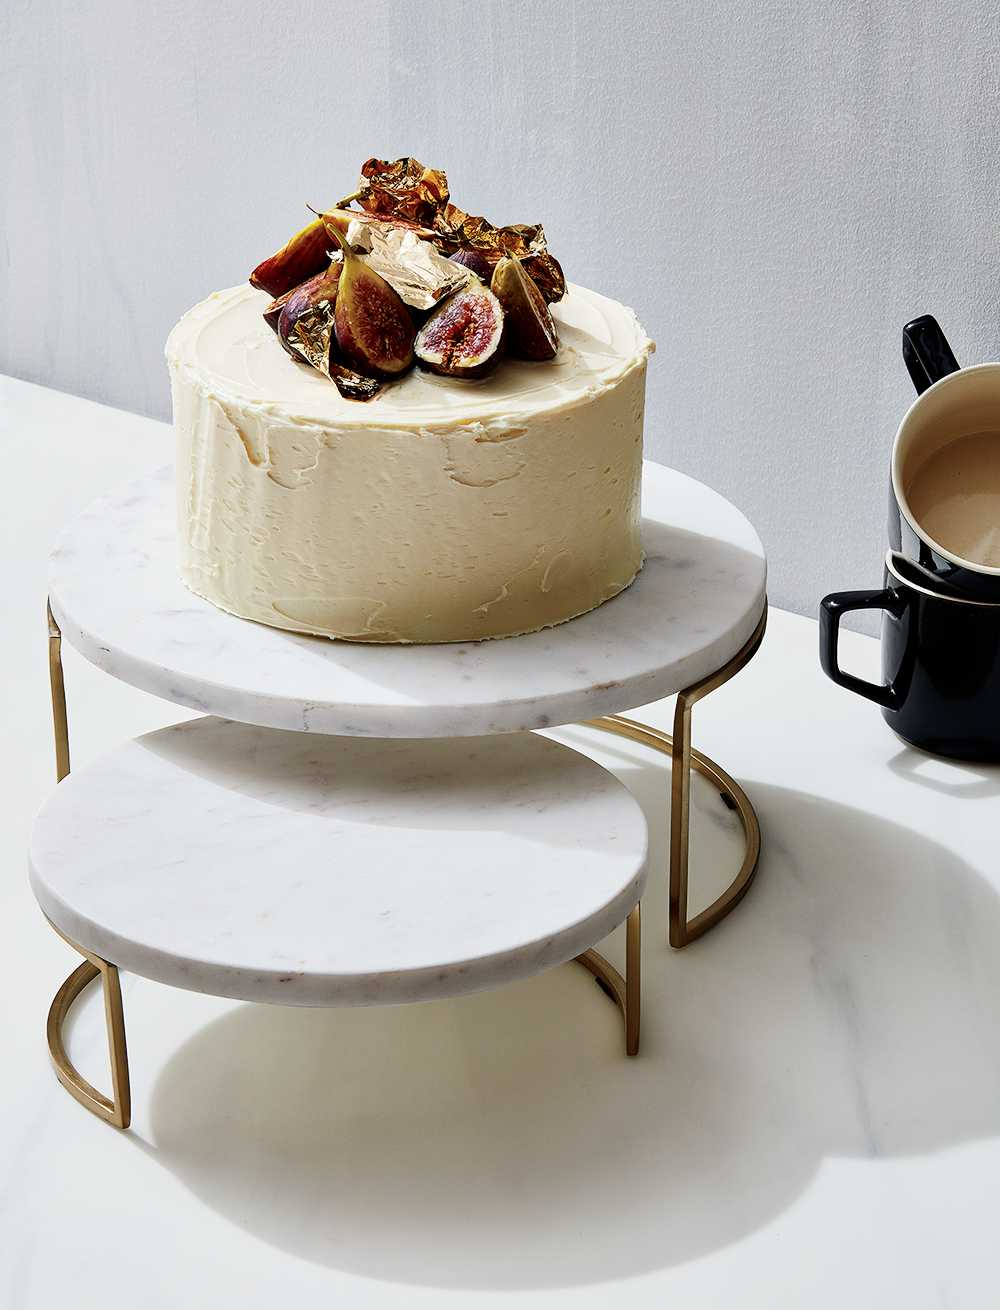 Favorite kitchen items like this cake stand